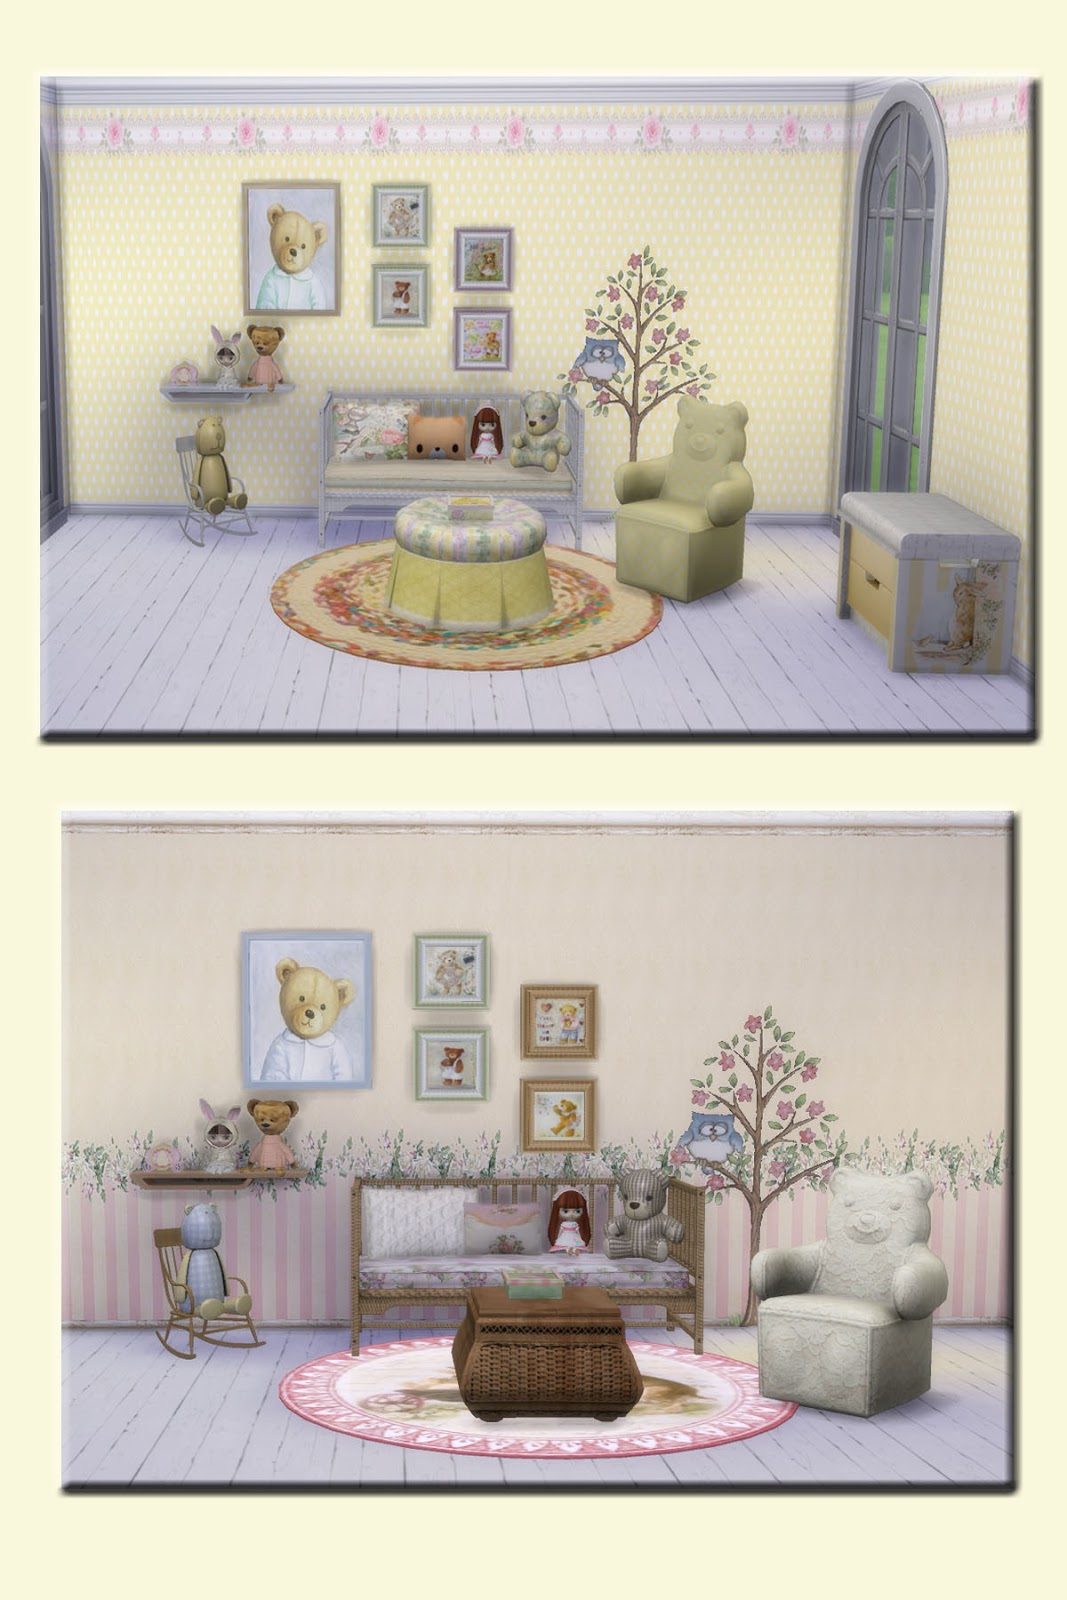 Children's Room Add Ons by Alelore